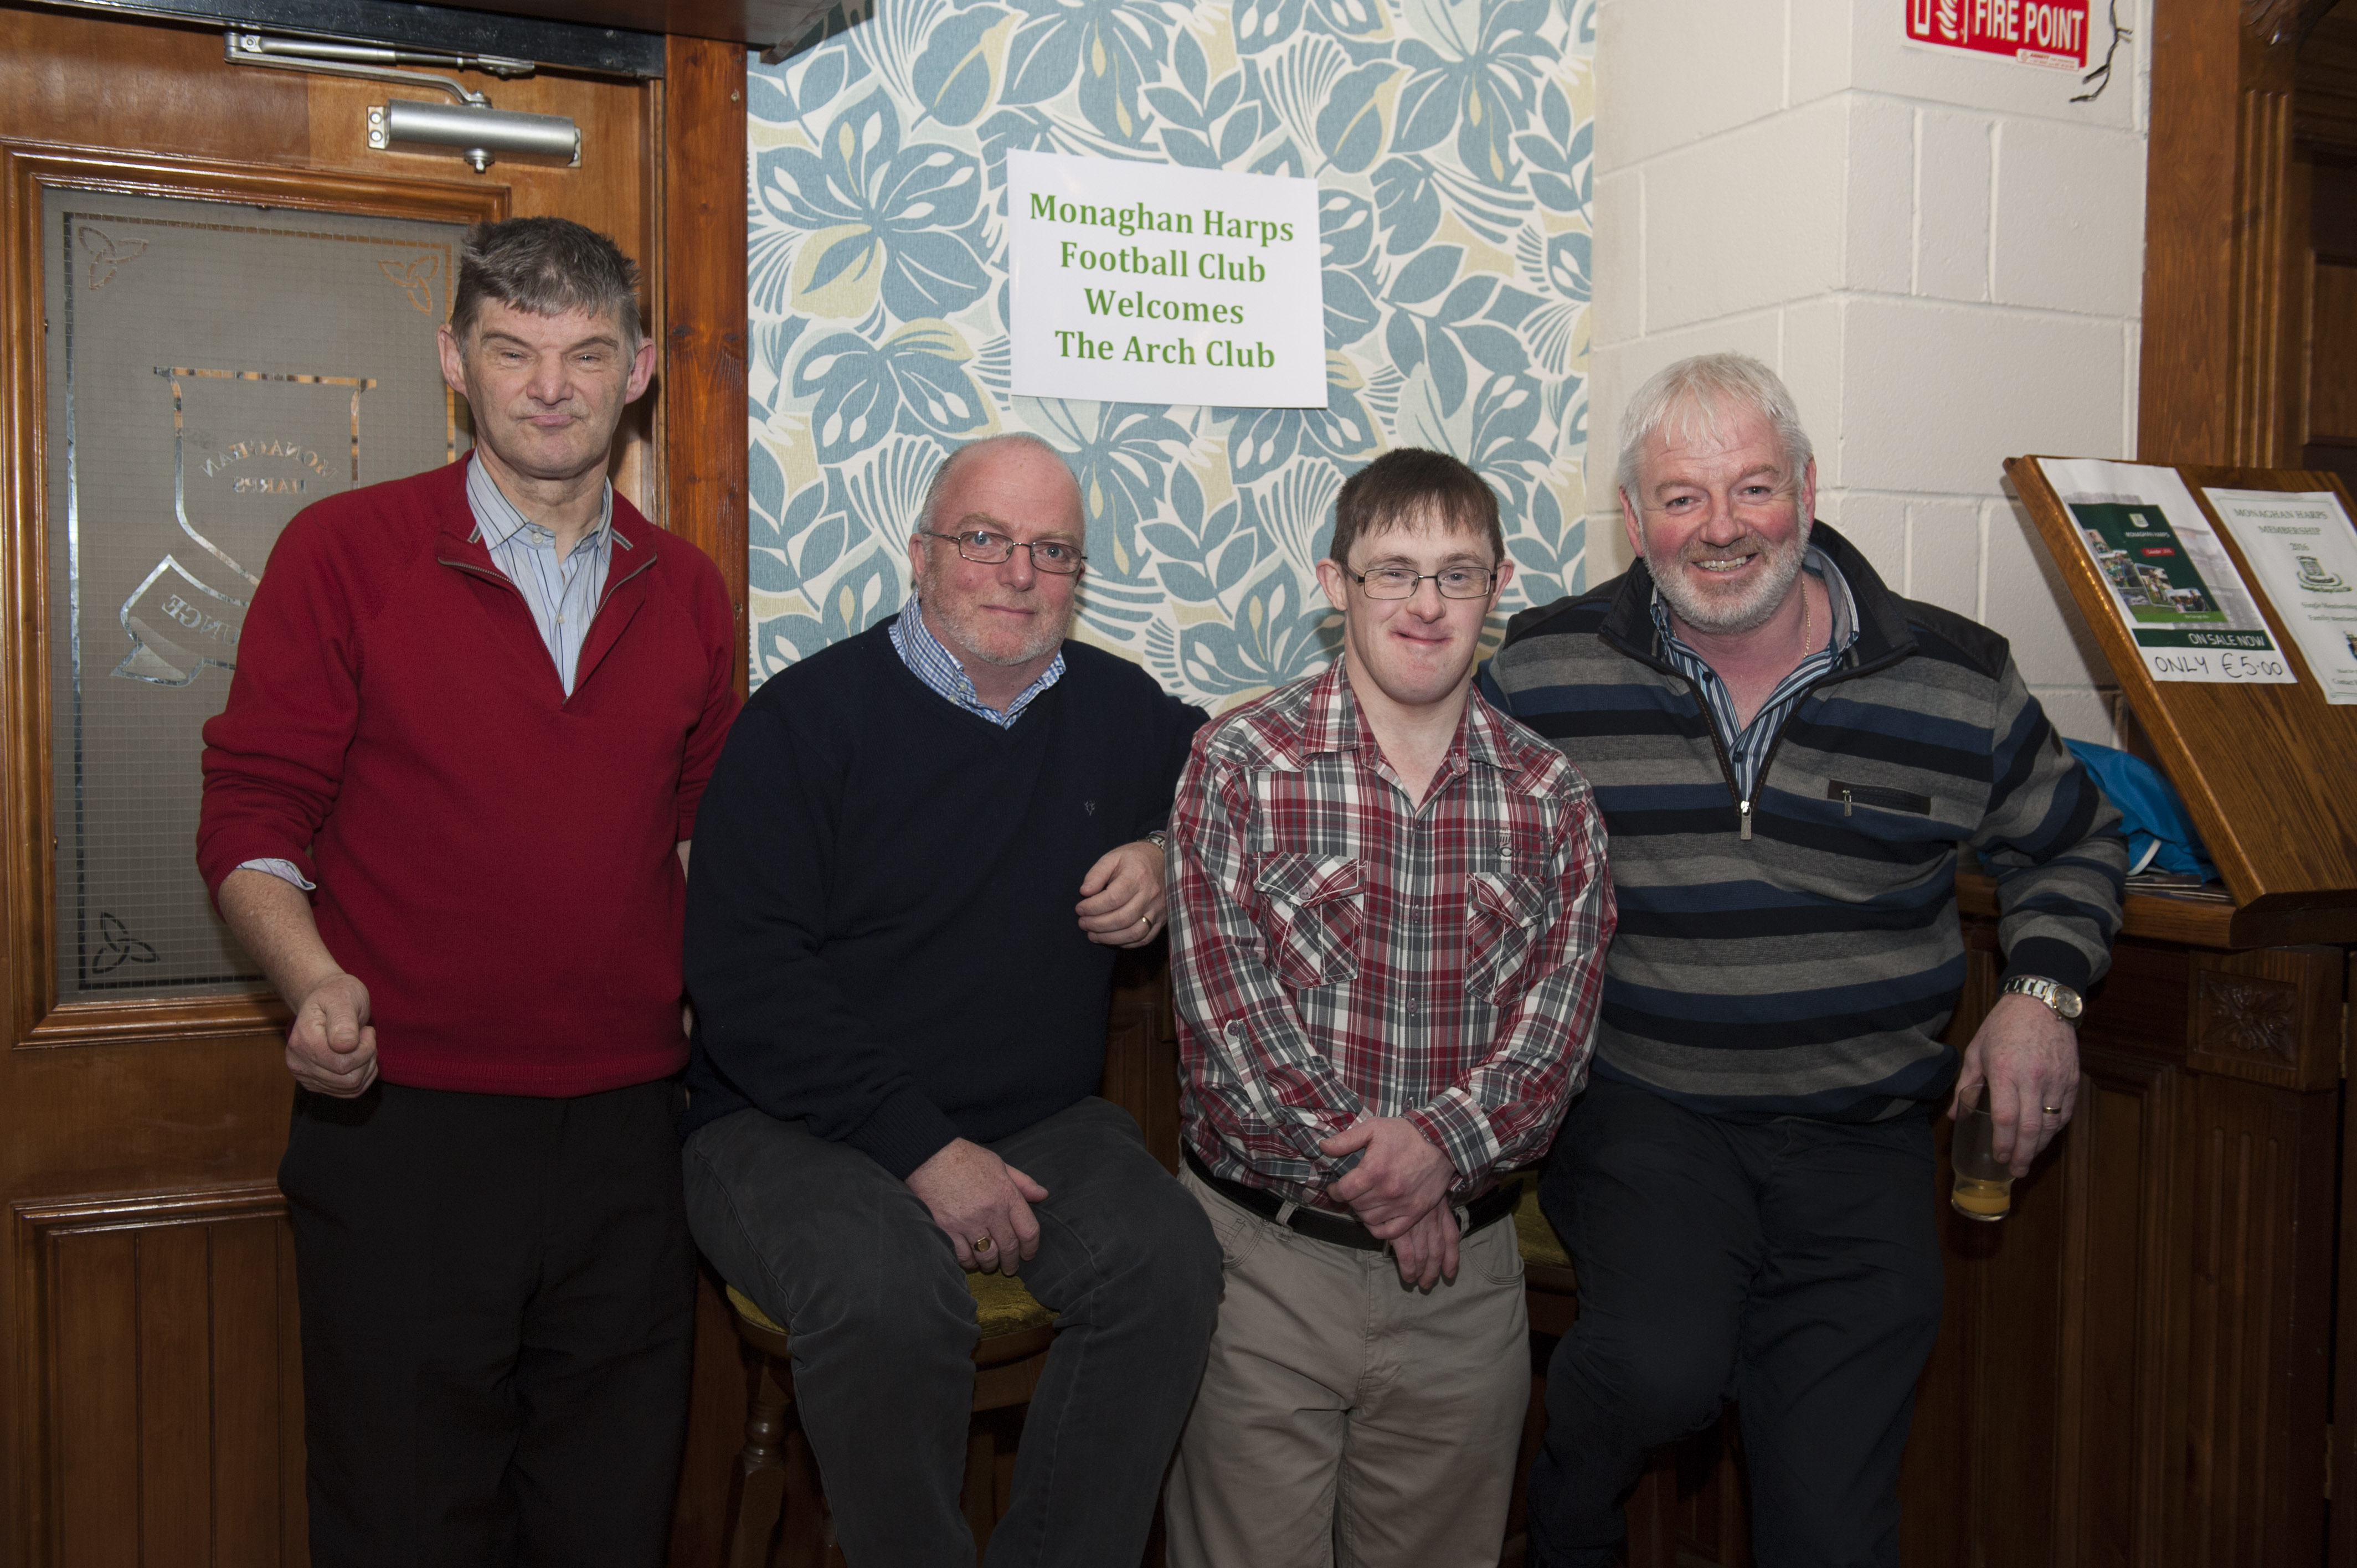 Pictured at the Monaghan Arch Club Party in the Monaghan Harps GFC were (L-R) Hugh Coyle, Sean McKenna, Chairman, Monaghan Harps GFC, Mark McCabe and Owen Connell. ©Rory Geary/The Northern Standard